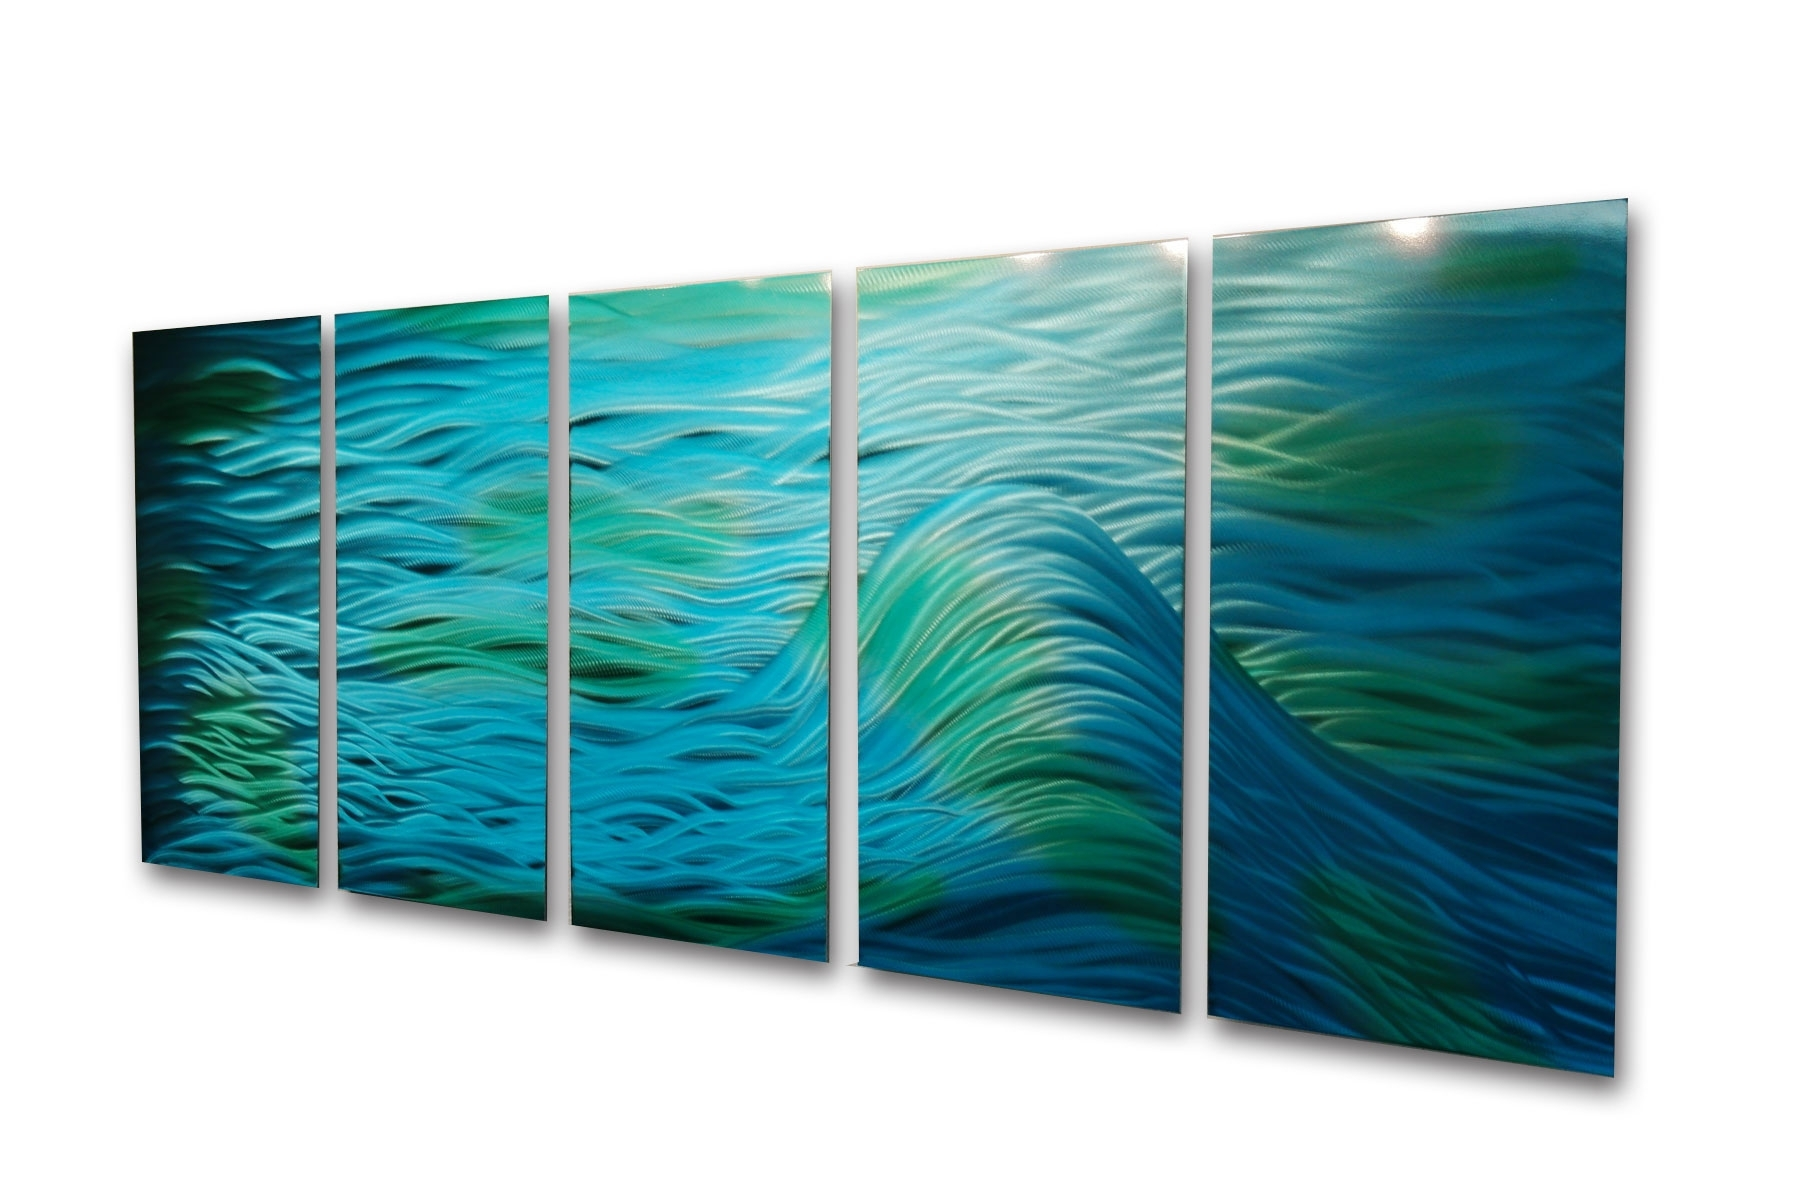 Classy 10+ Abstract Metal Wall Art Design Inspiration Of Best 25+ Within 2018 Kindred Abstract Metal Wall Art (View 12 of 20)